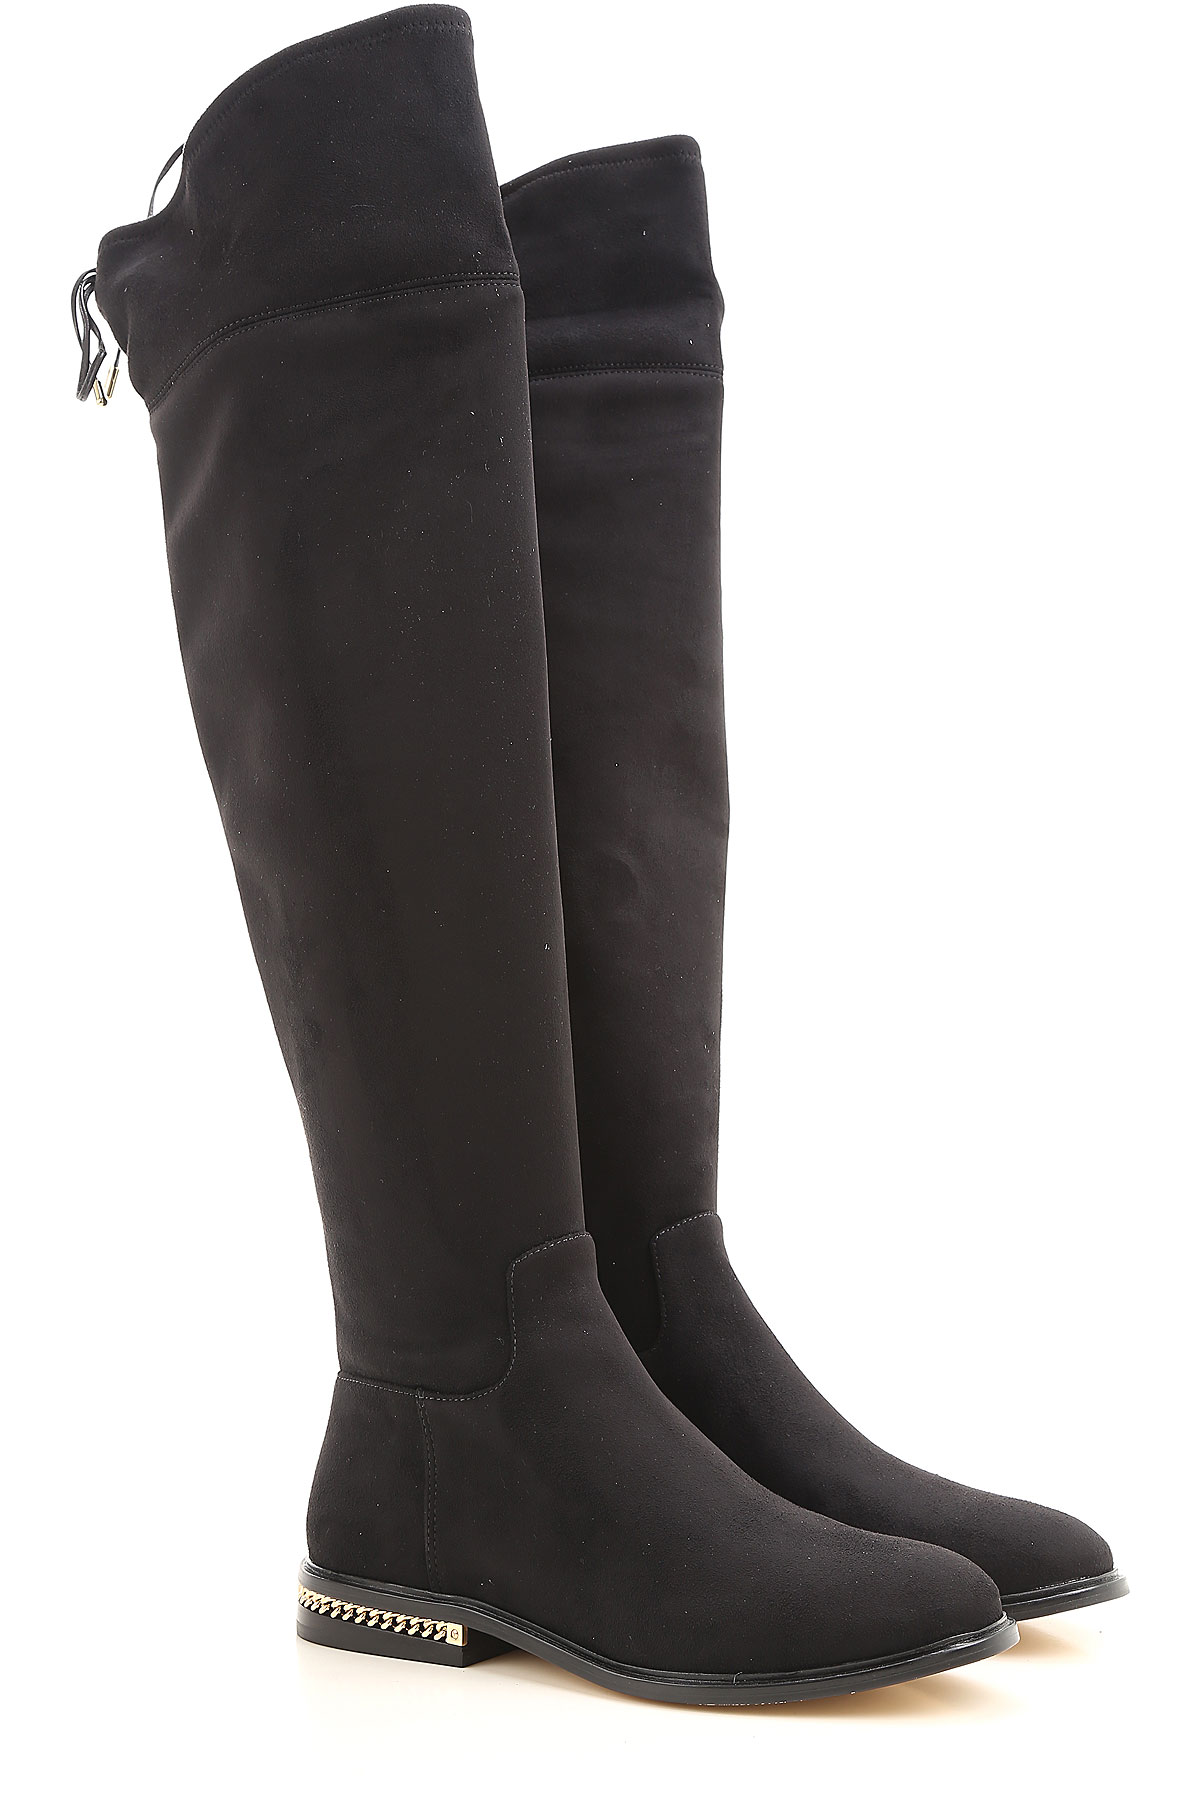 Michael Kors Boots for Women, Booties On Sale, Black, Suede leather, 2017, 3.5 4.5